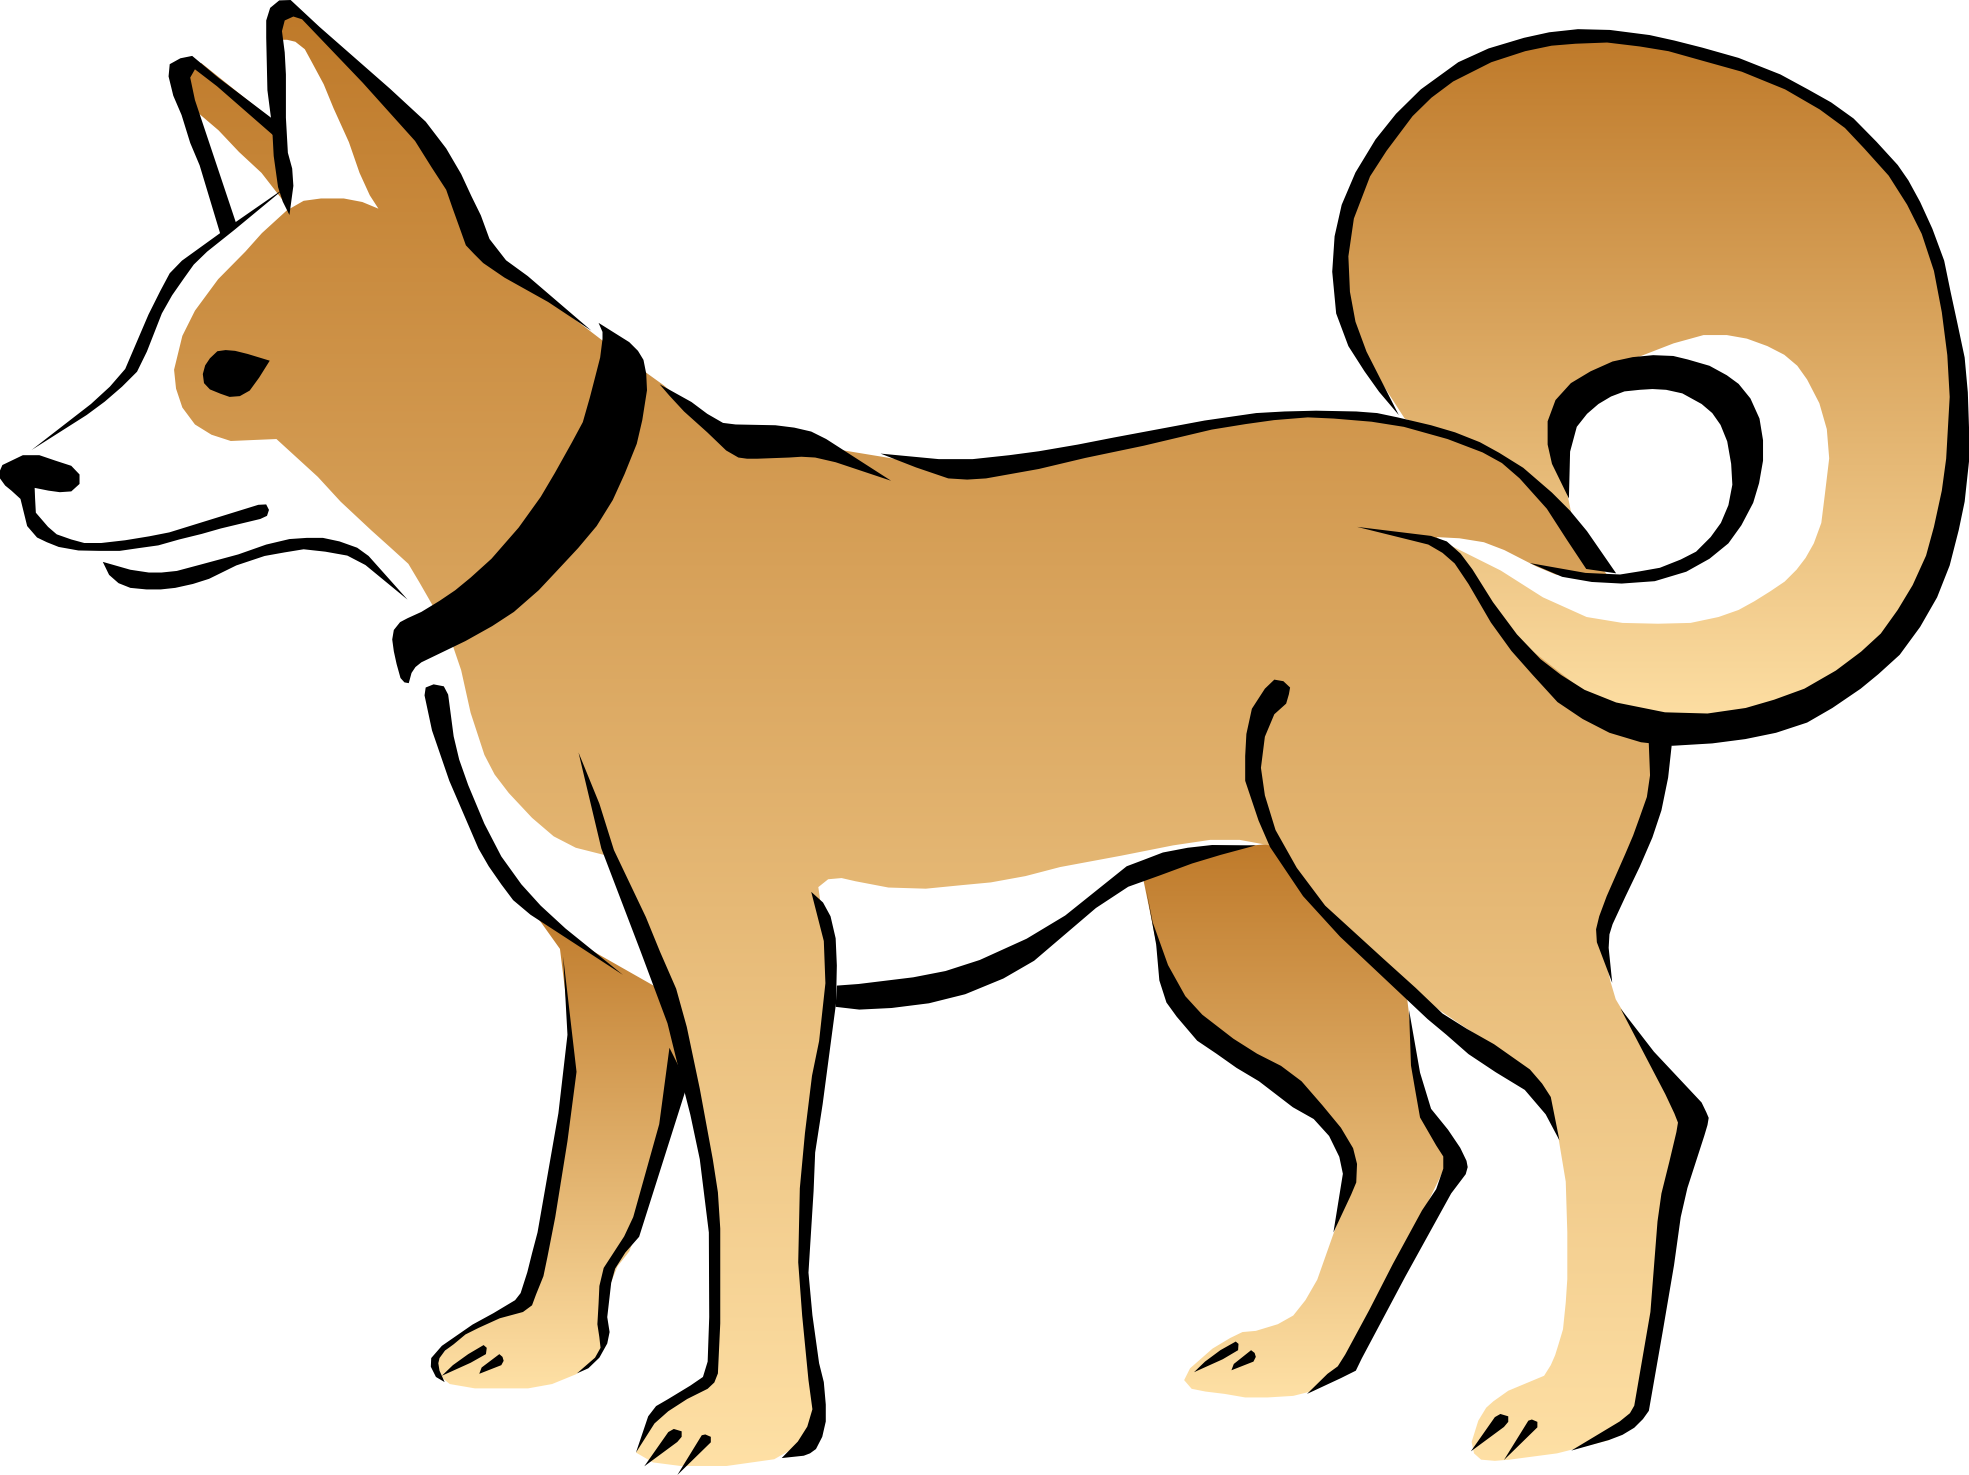 Shit vector animated dog